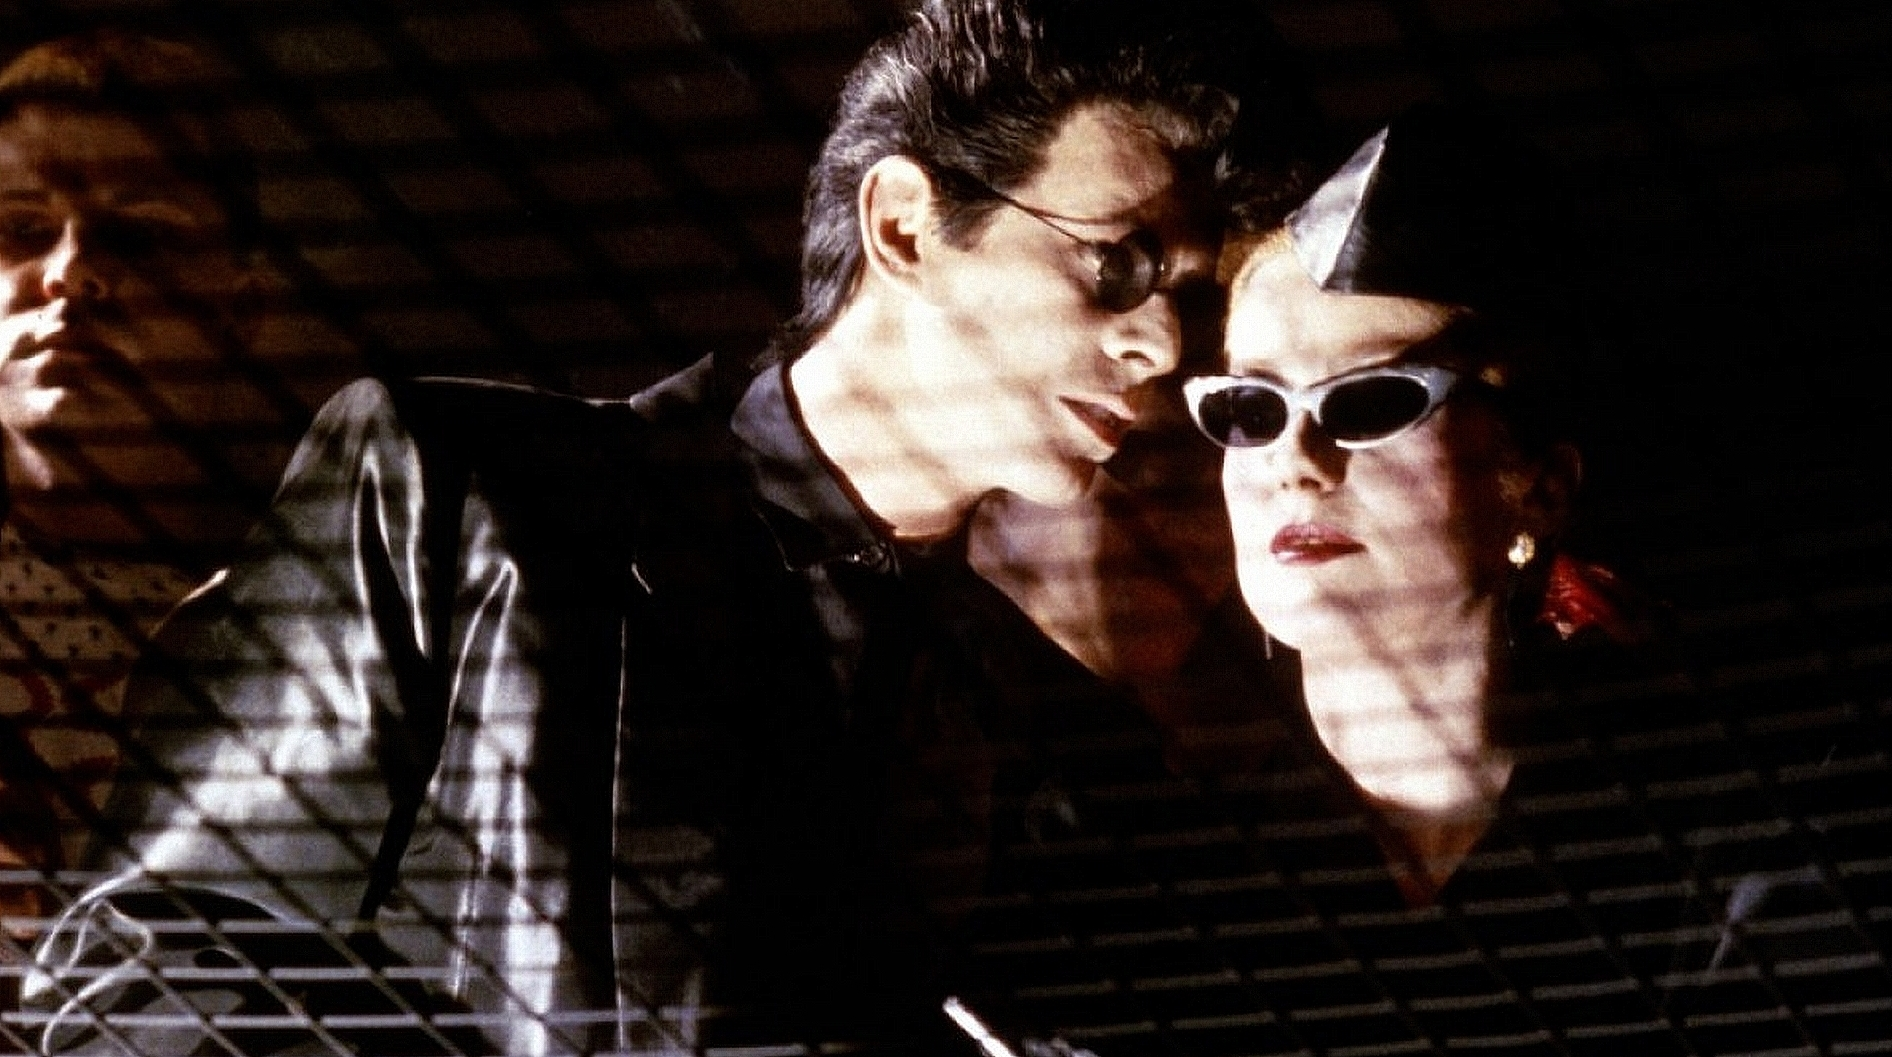 David Bowie, THE HUNGER, CINEMA, DAVID BOWIE MOVIES,